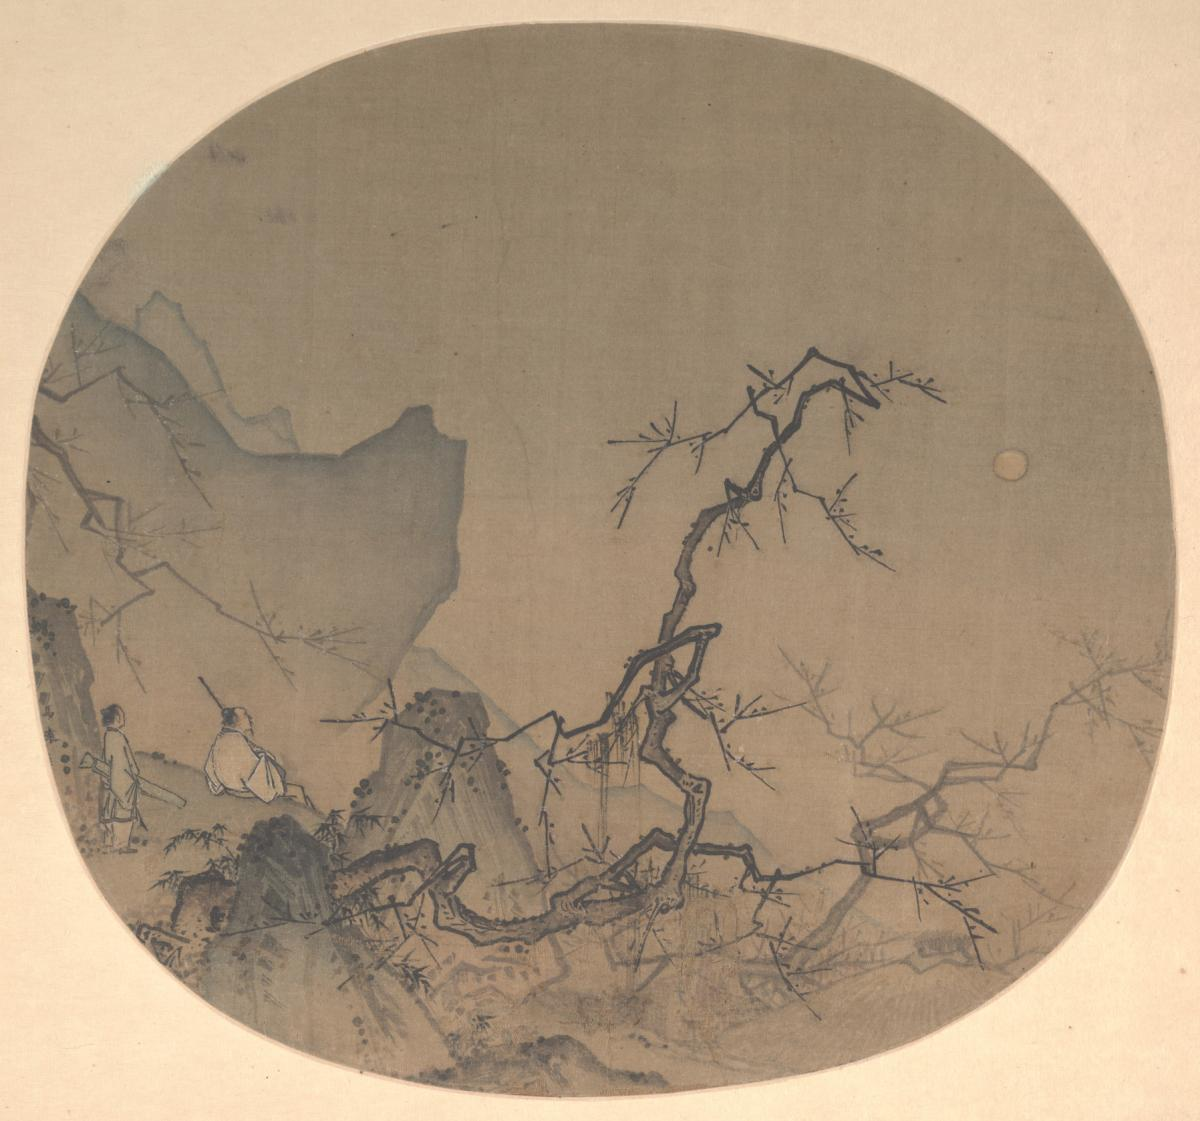 Ma Yuan, Viewing Plum Blossoms by Moonlight, Southern Song dynasty (1127-1279), 9 7/8 x 12 1/2 in., fan mounted as an album leaf; ink and color on silk